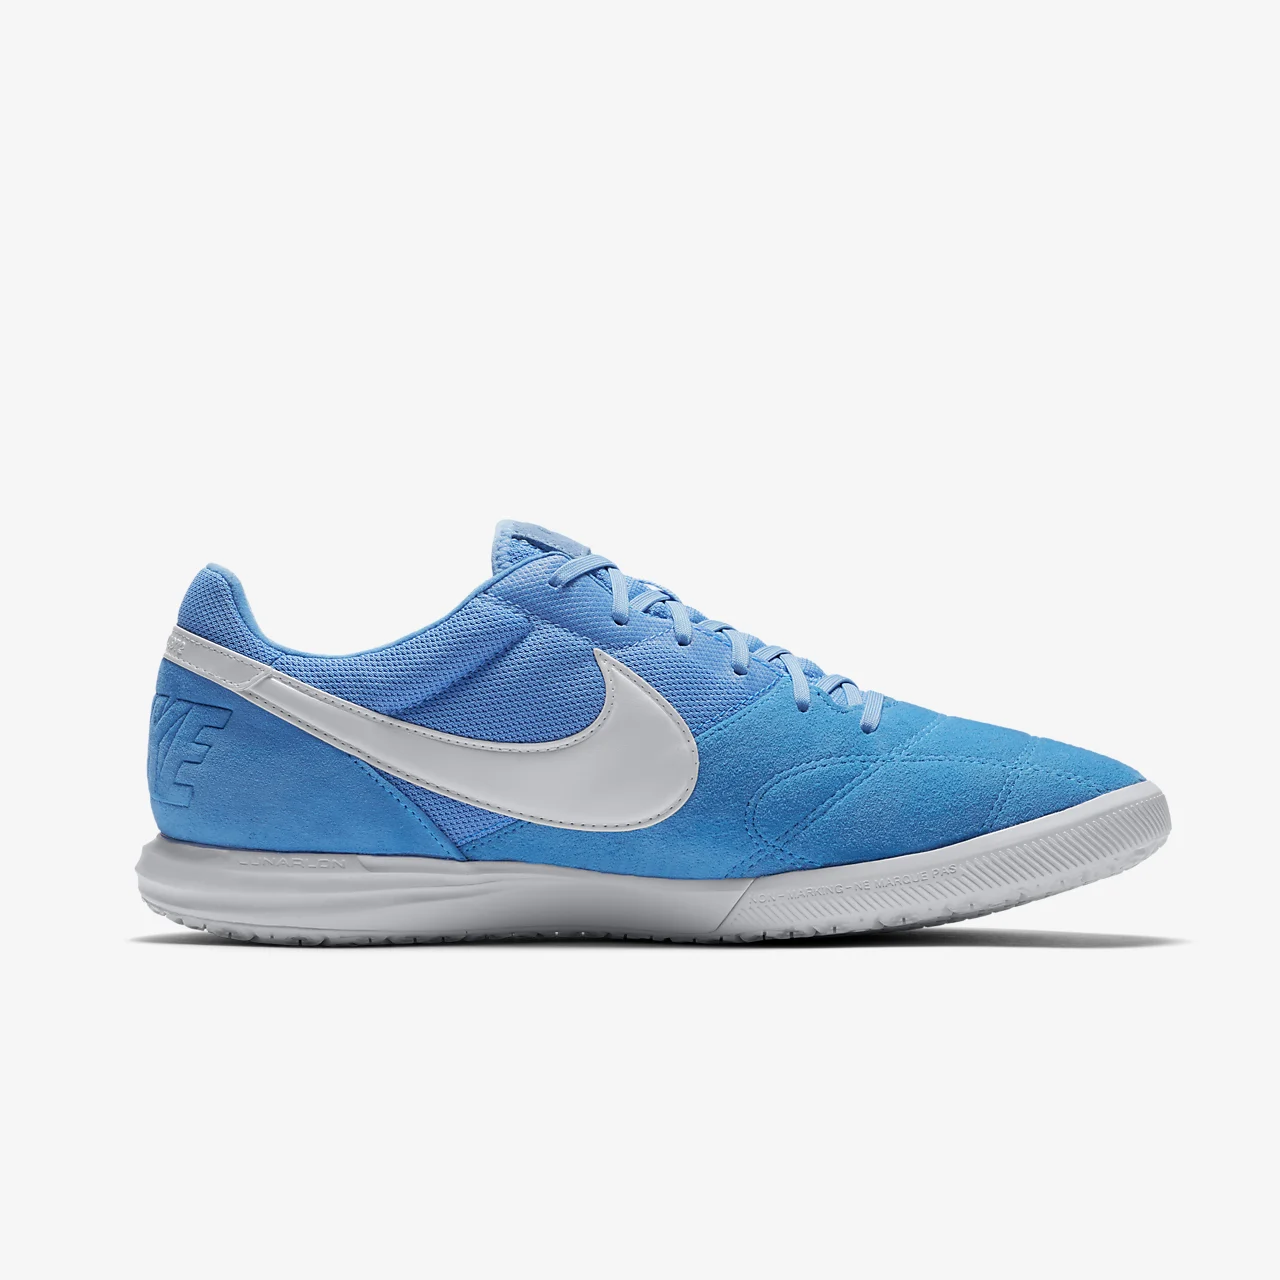 유럽직배송 나이키 NIKE Nike Premier 2 Sala IC Indoor/Court Football Shoe AV3153-414